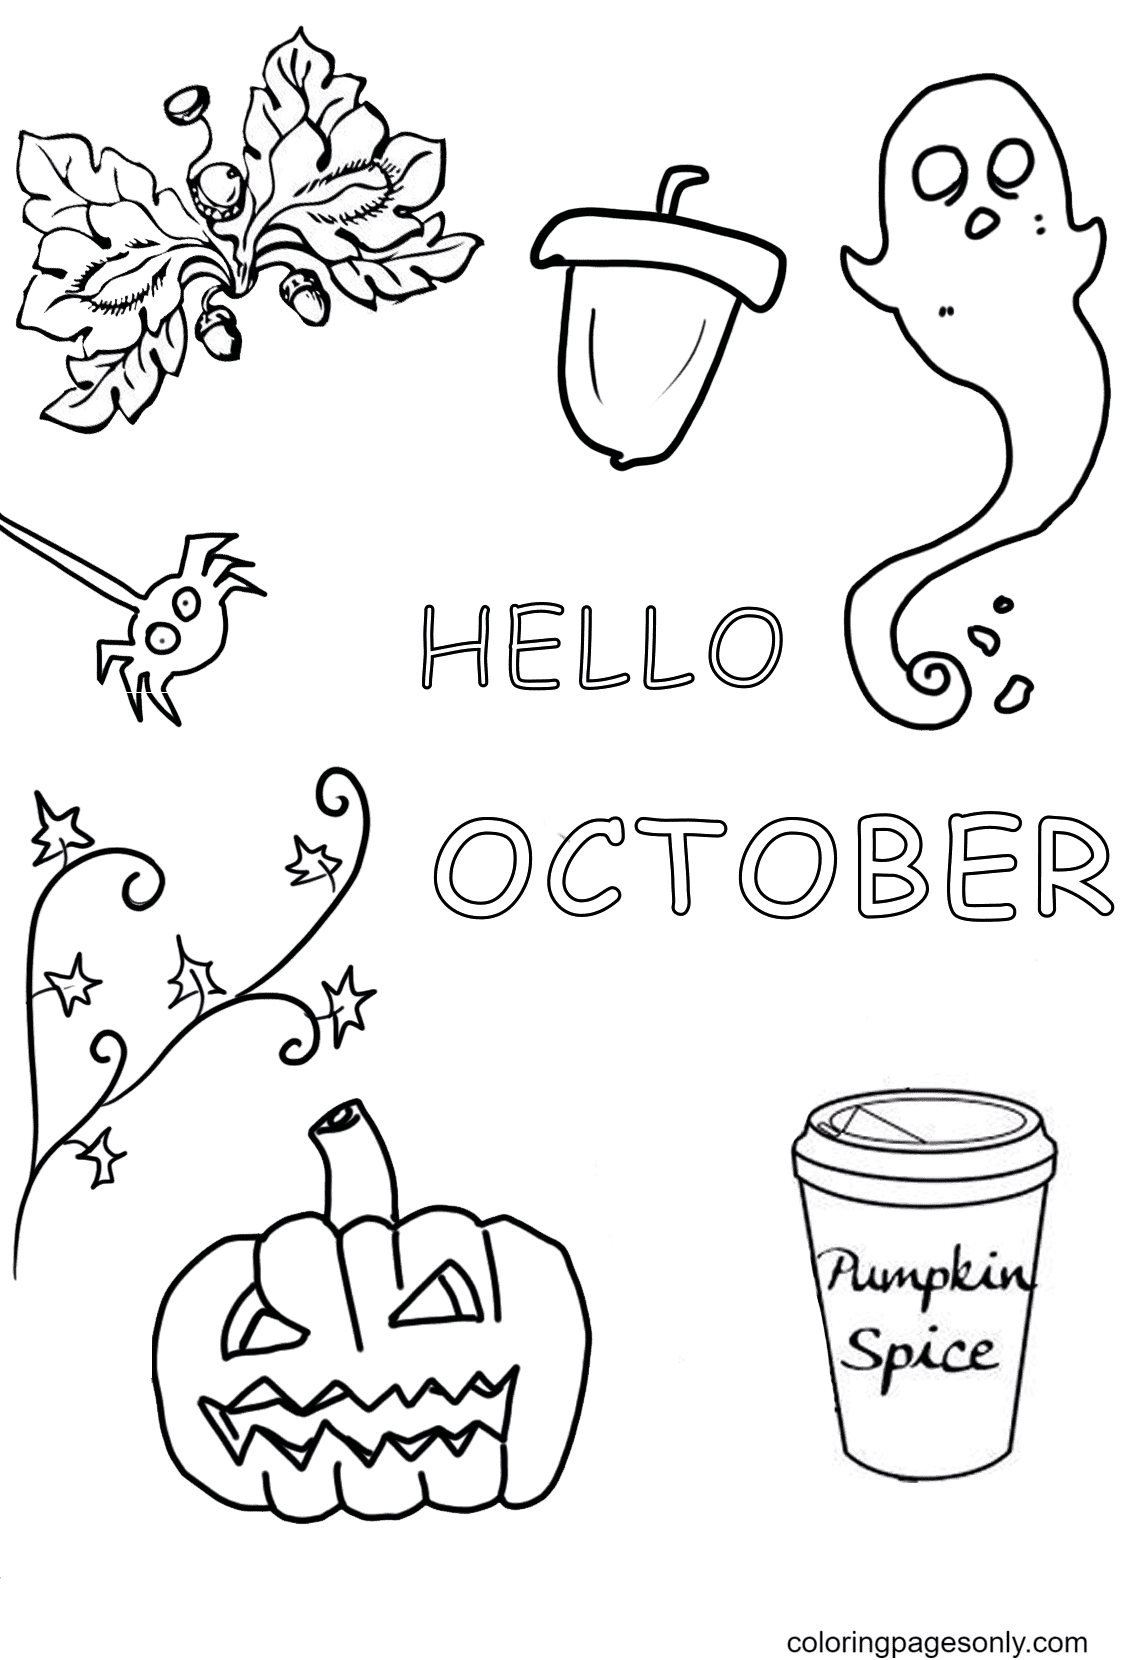 Hello October Halloween Coloring Page